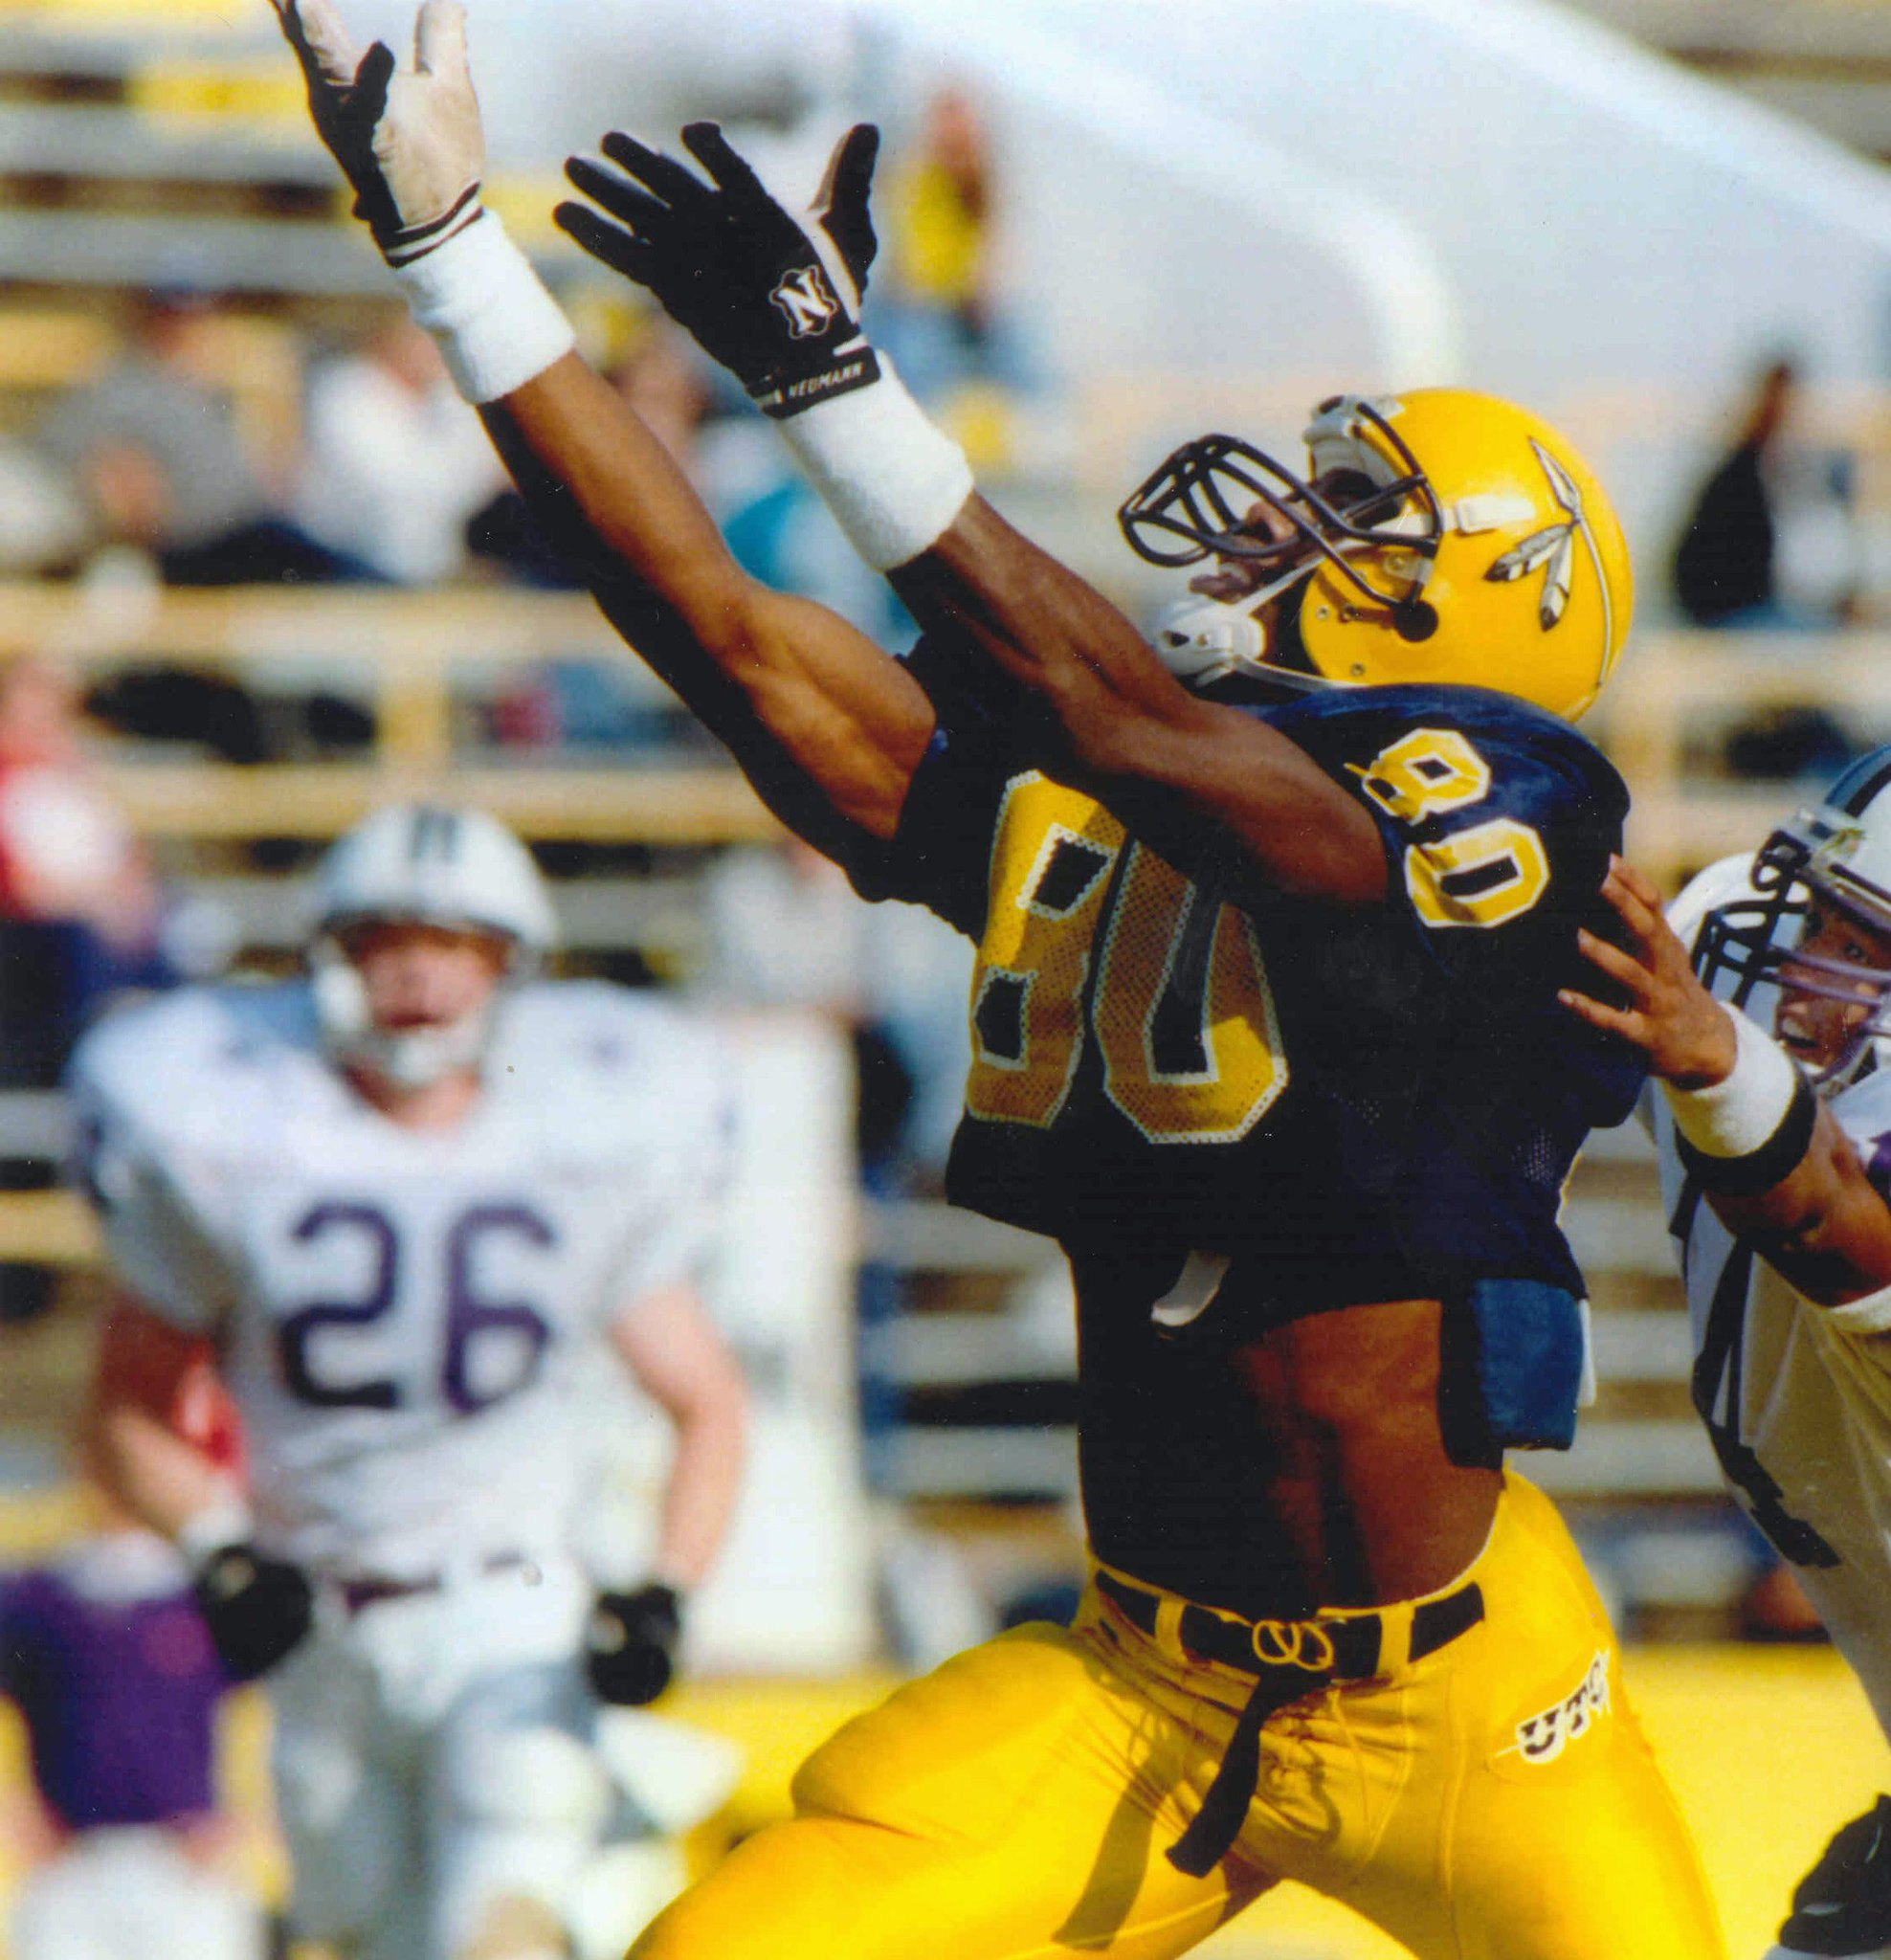 Terrell Owens announces he'll give HOF speech at alma mater, Tennessee Chattanooga   https://t.co/qWf5ymLxqr https://t.co/NYK8c1ouyS